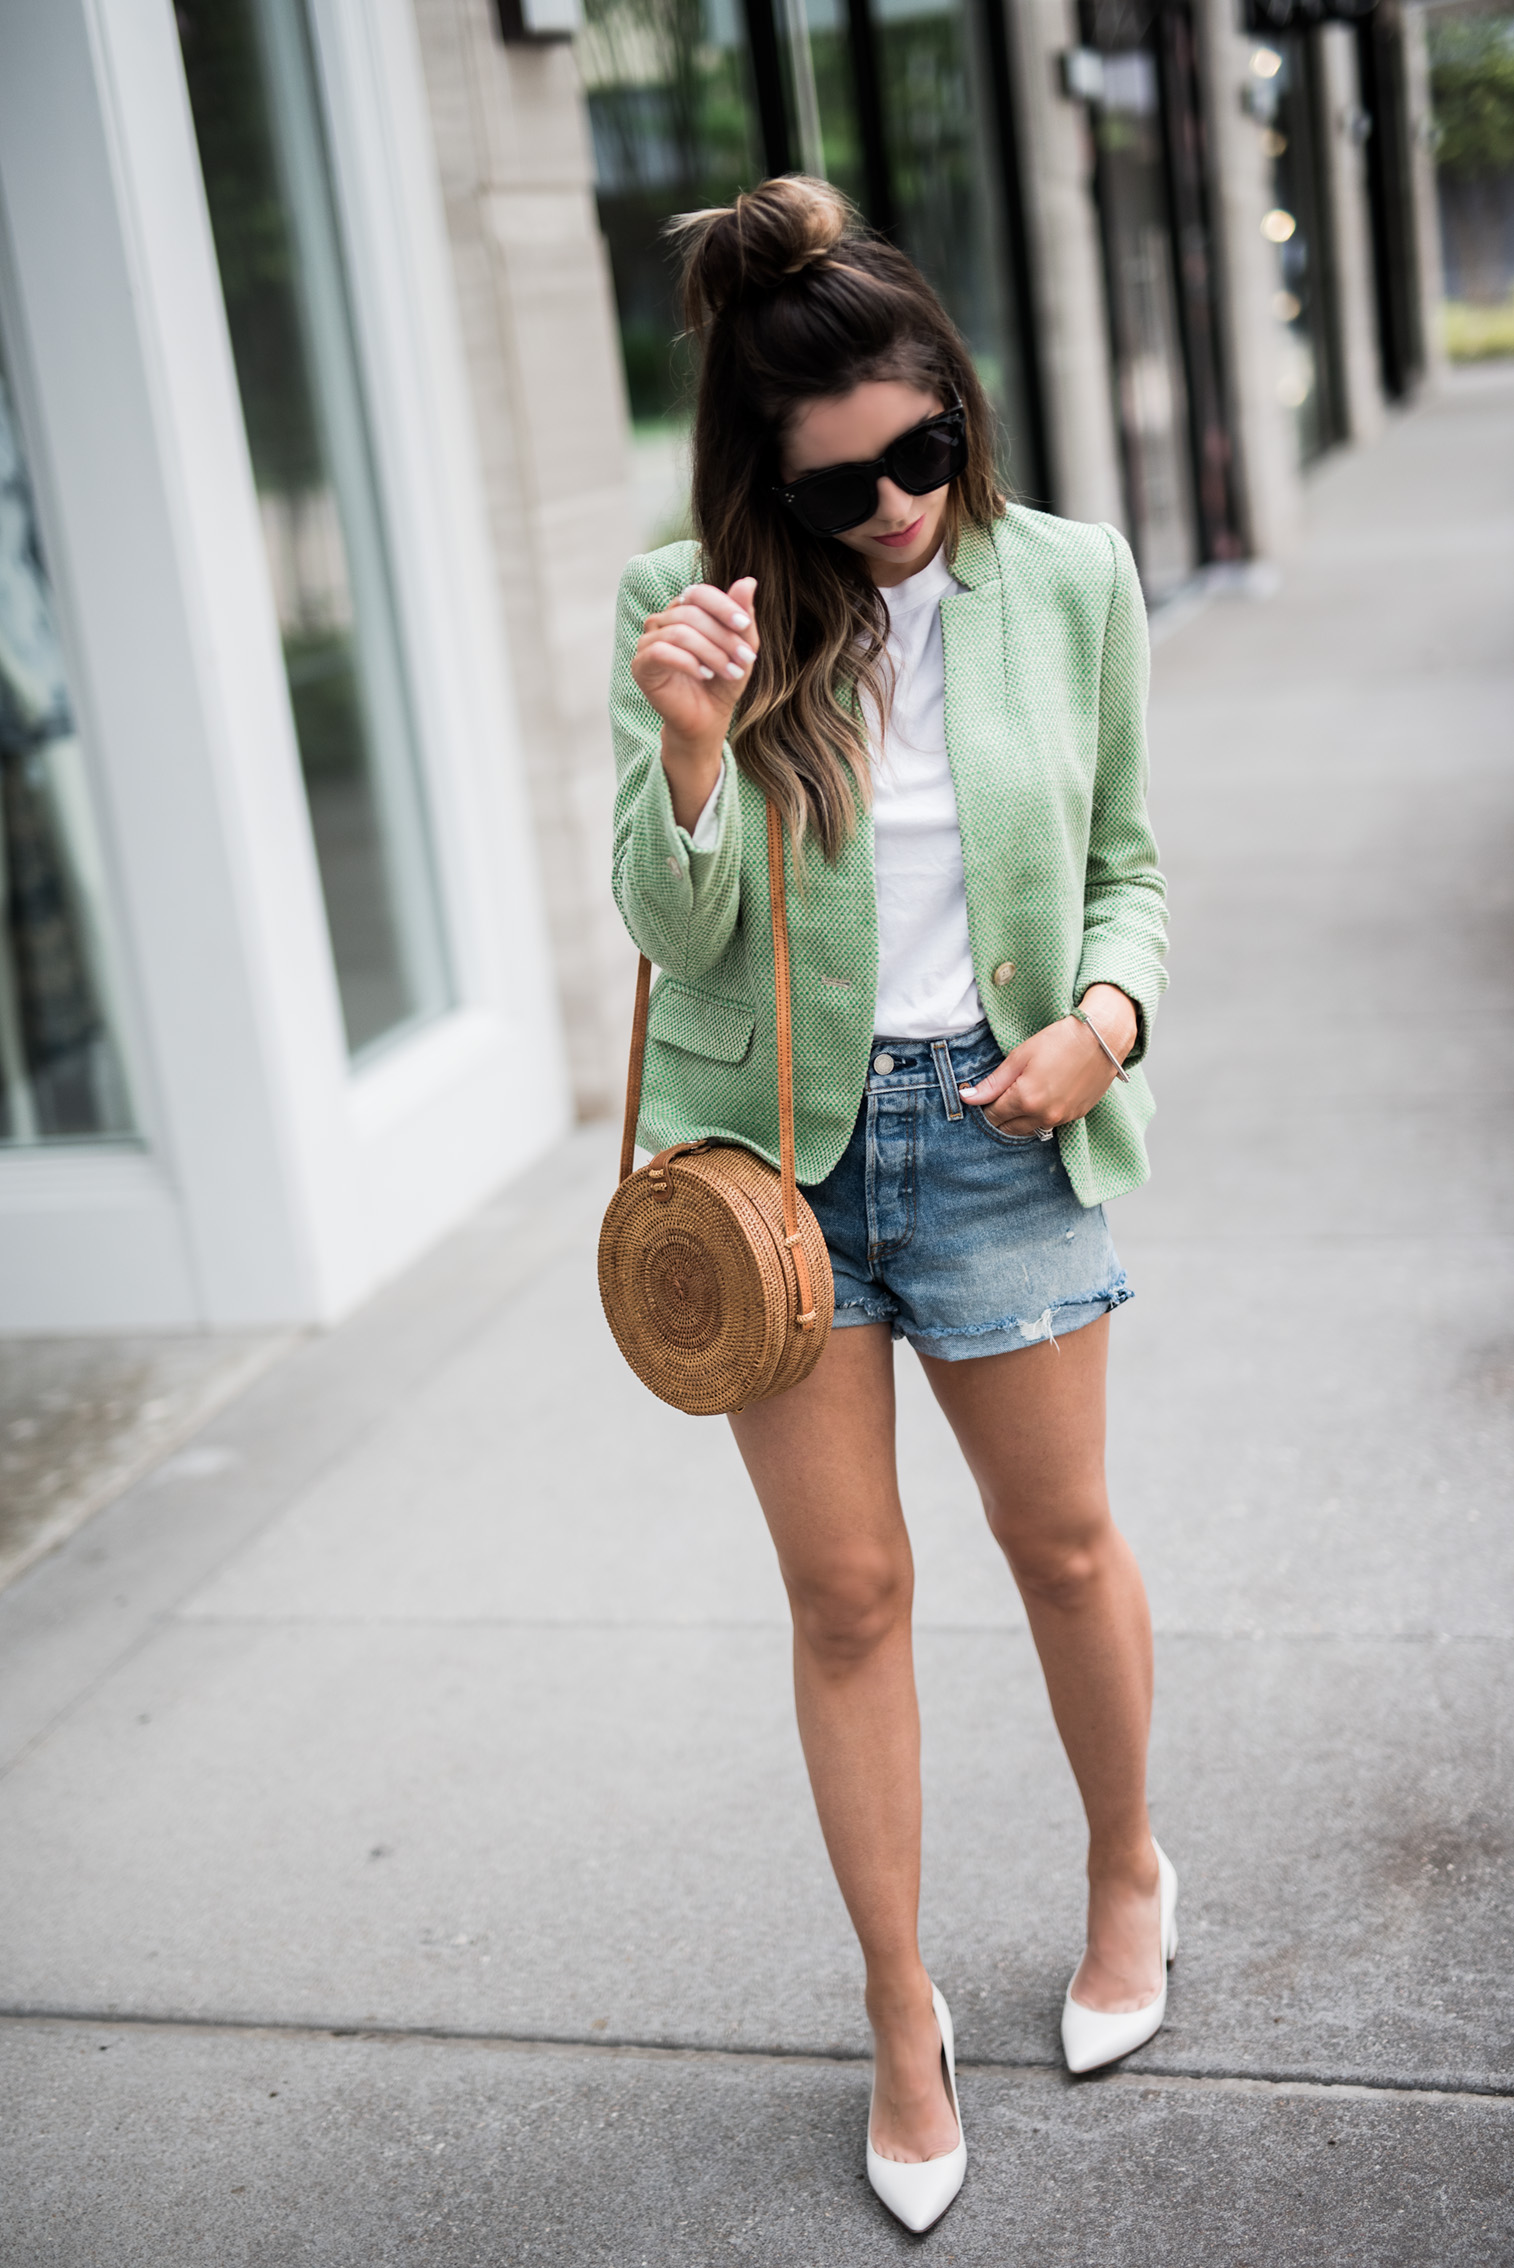 Tiffany Jais Houston fashion and lifestyle blogger | How to wear your work blazer on the weekends | Denim cutoffs, Zala pumps, summer outfit ideas